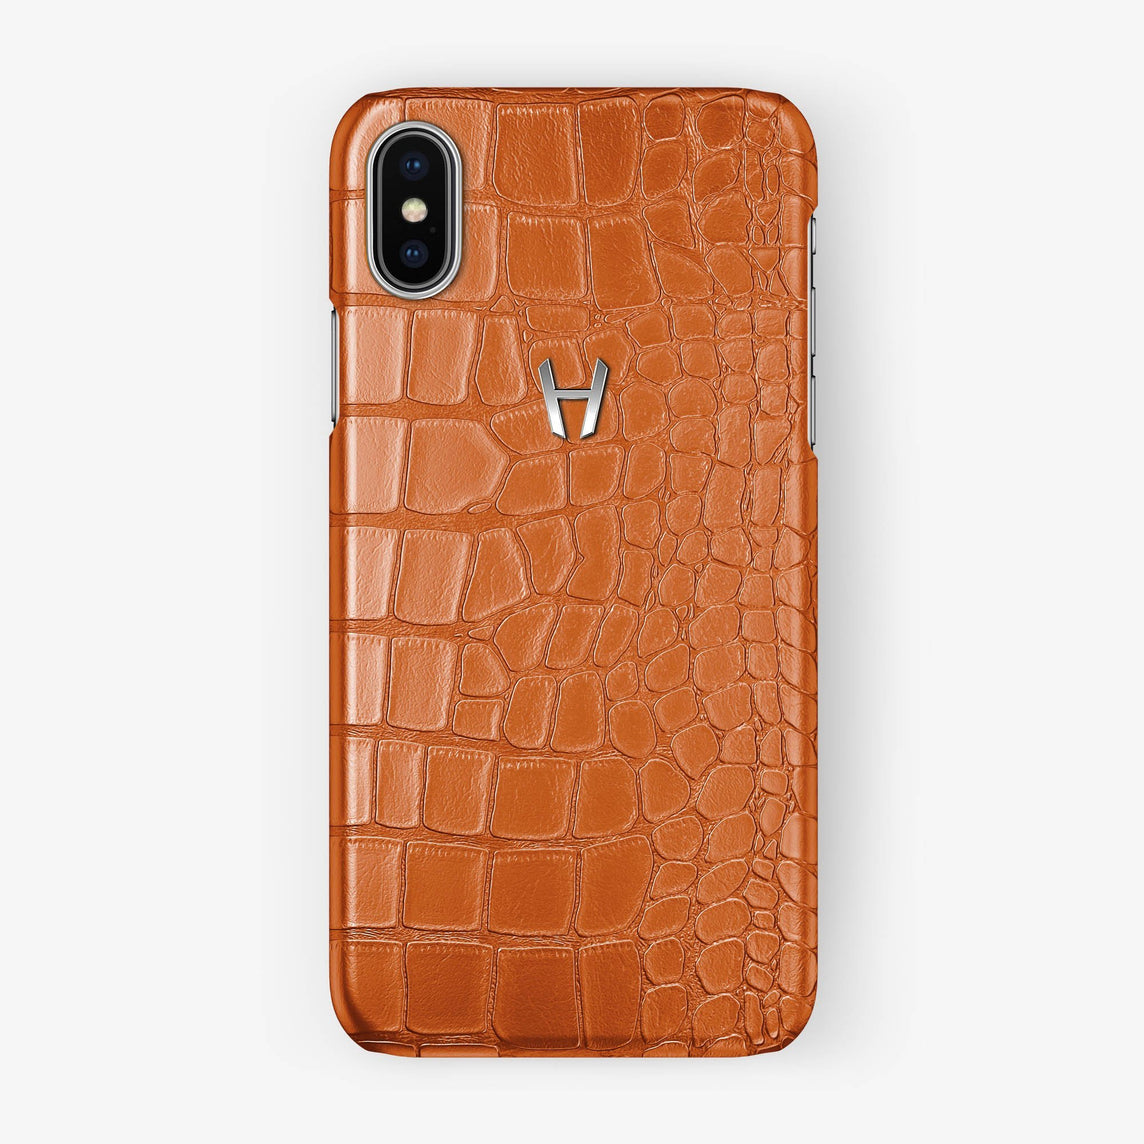 Alligator Case iPhone X/Xs | Orange - Stainless Steel without-personalization